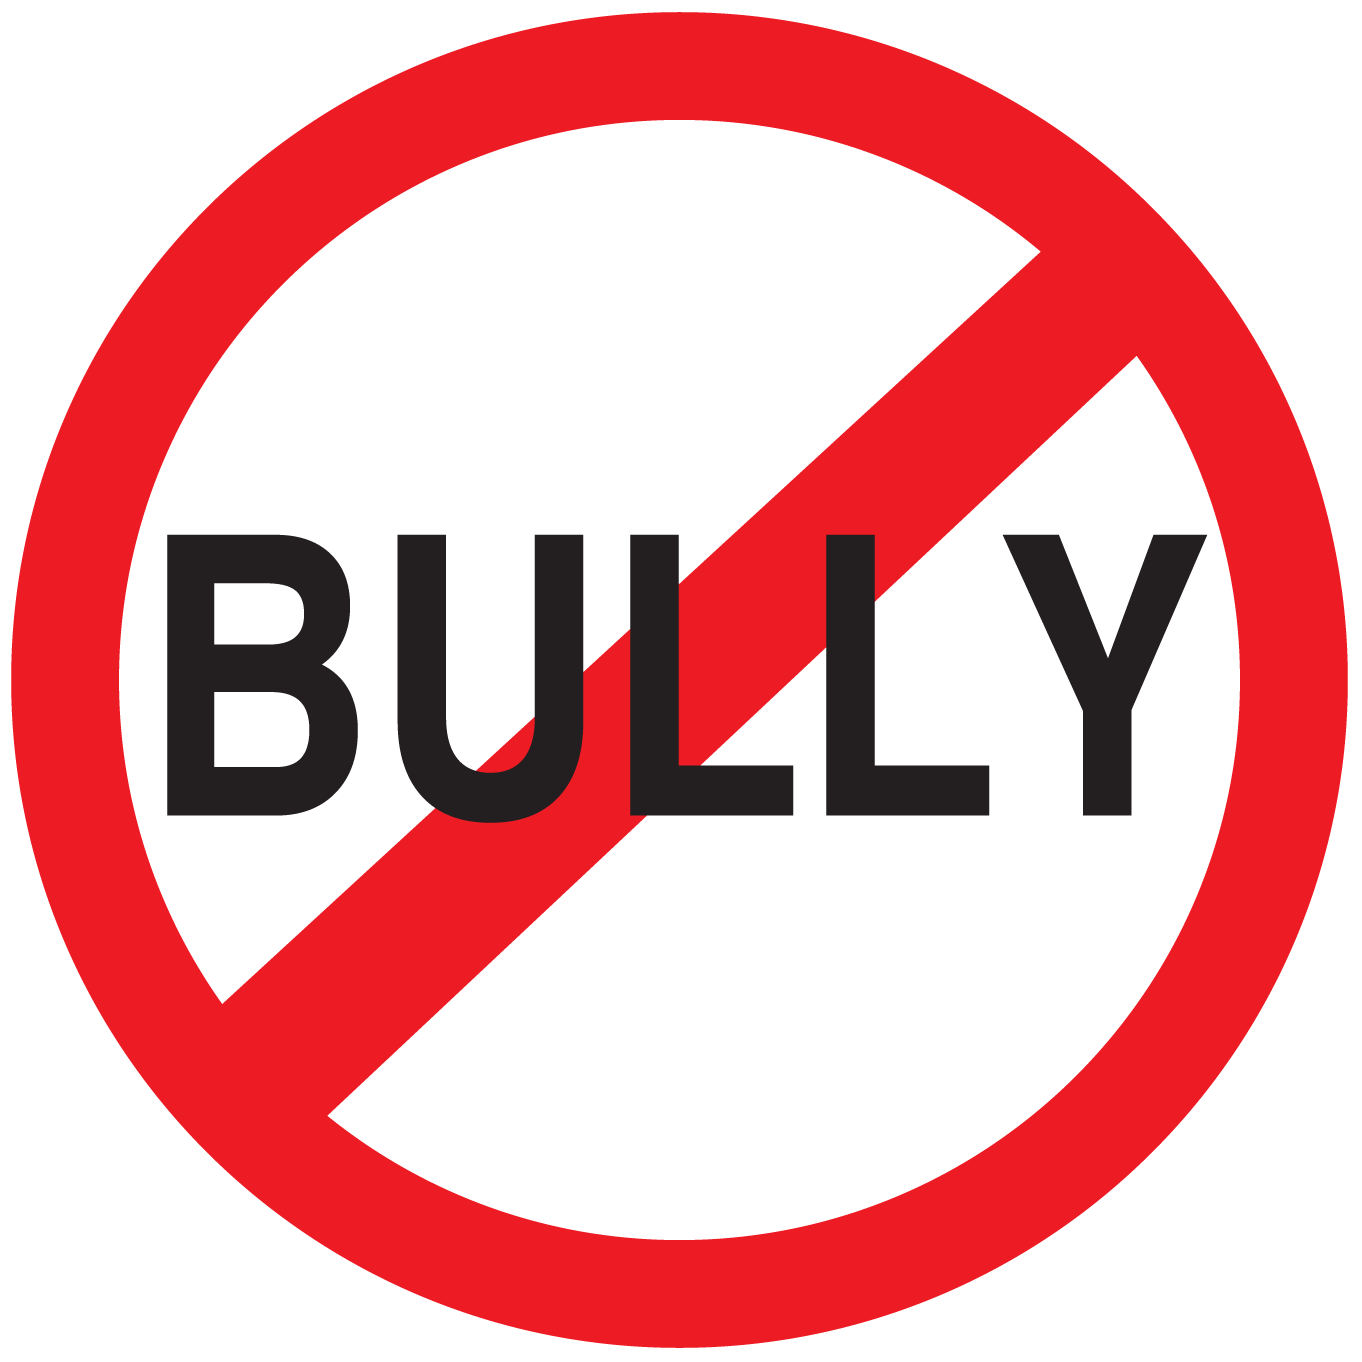 Free No Bullying Clipart, Download Free Clip Art, Free Clip.